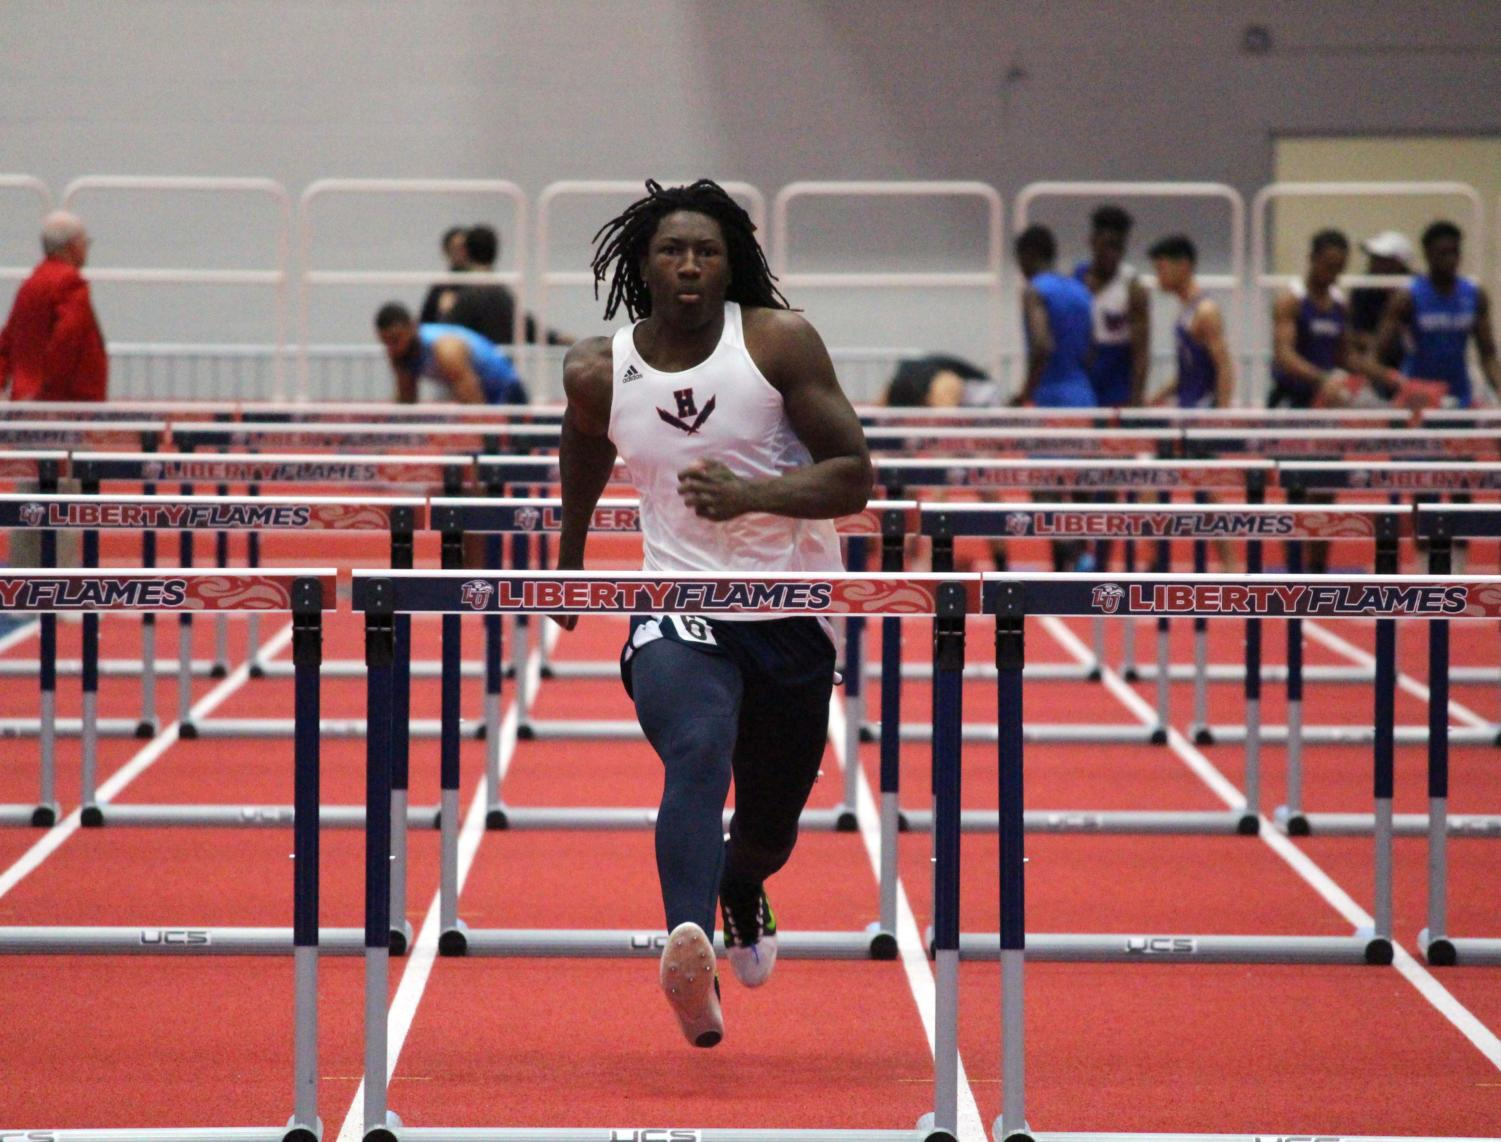 Sophomore Jaylin Smith approaches the final hurdle in the men's 55 meter hurdles. Smith set a personal record with a time of 9.86.